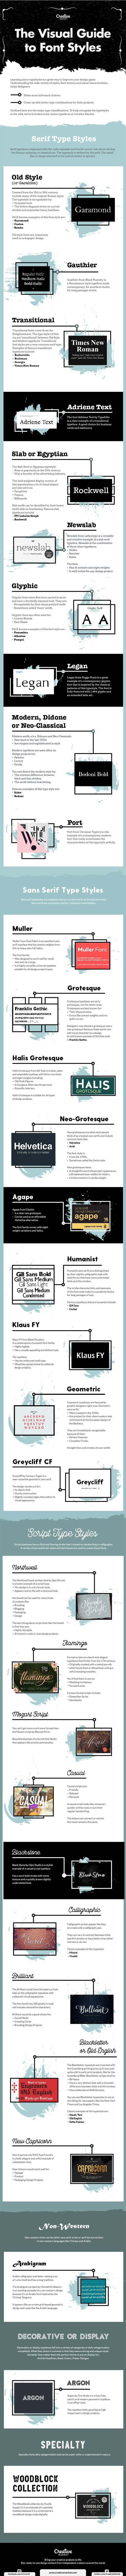 The Visual Guide To Font Styles #Infographic #FontStyle